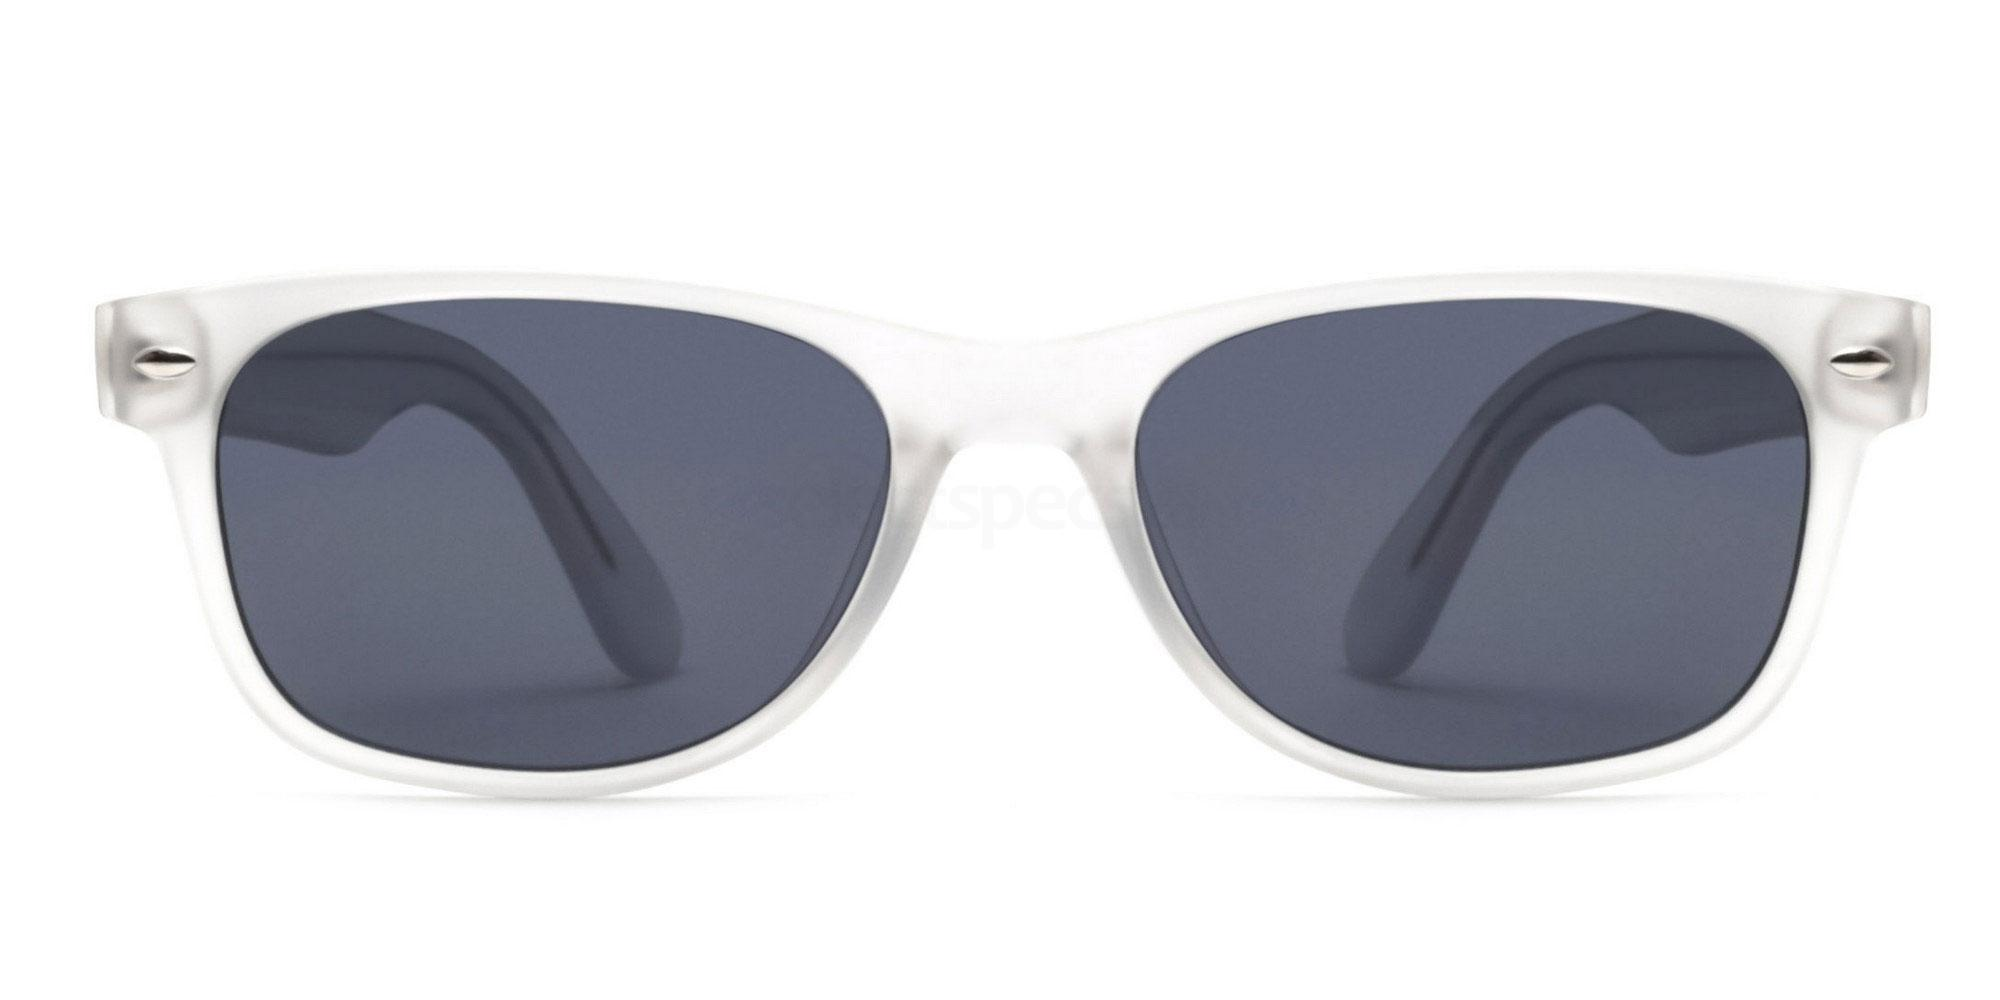 Clear S8122 - Clear (Sunglasses) Sunglasses, Savannah